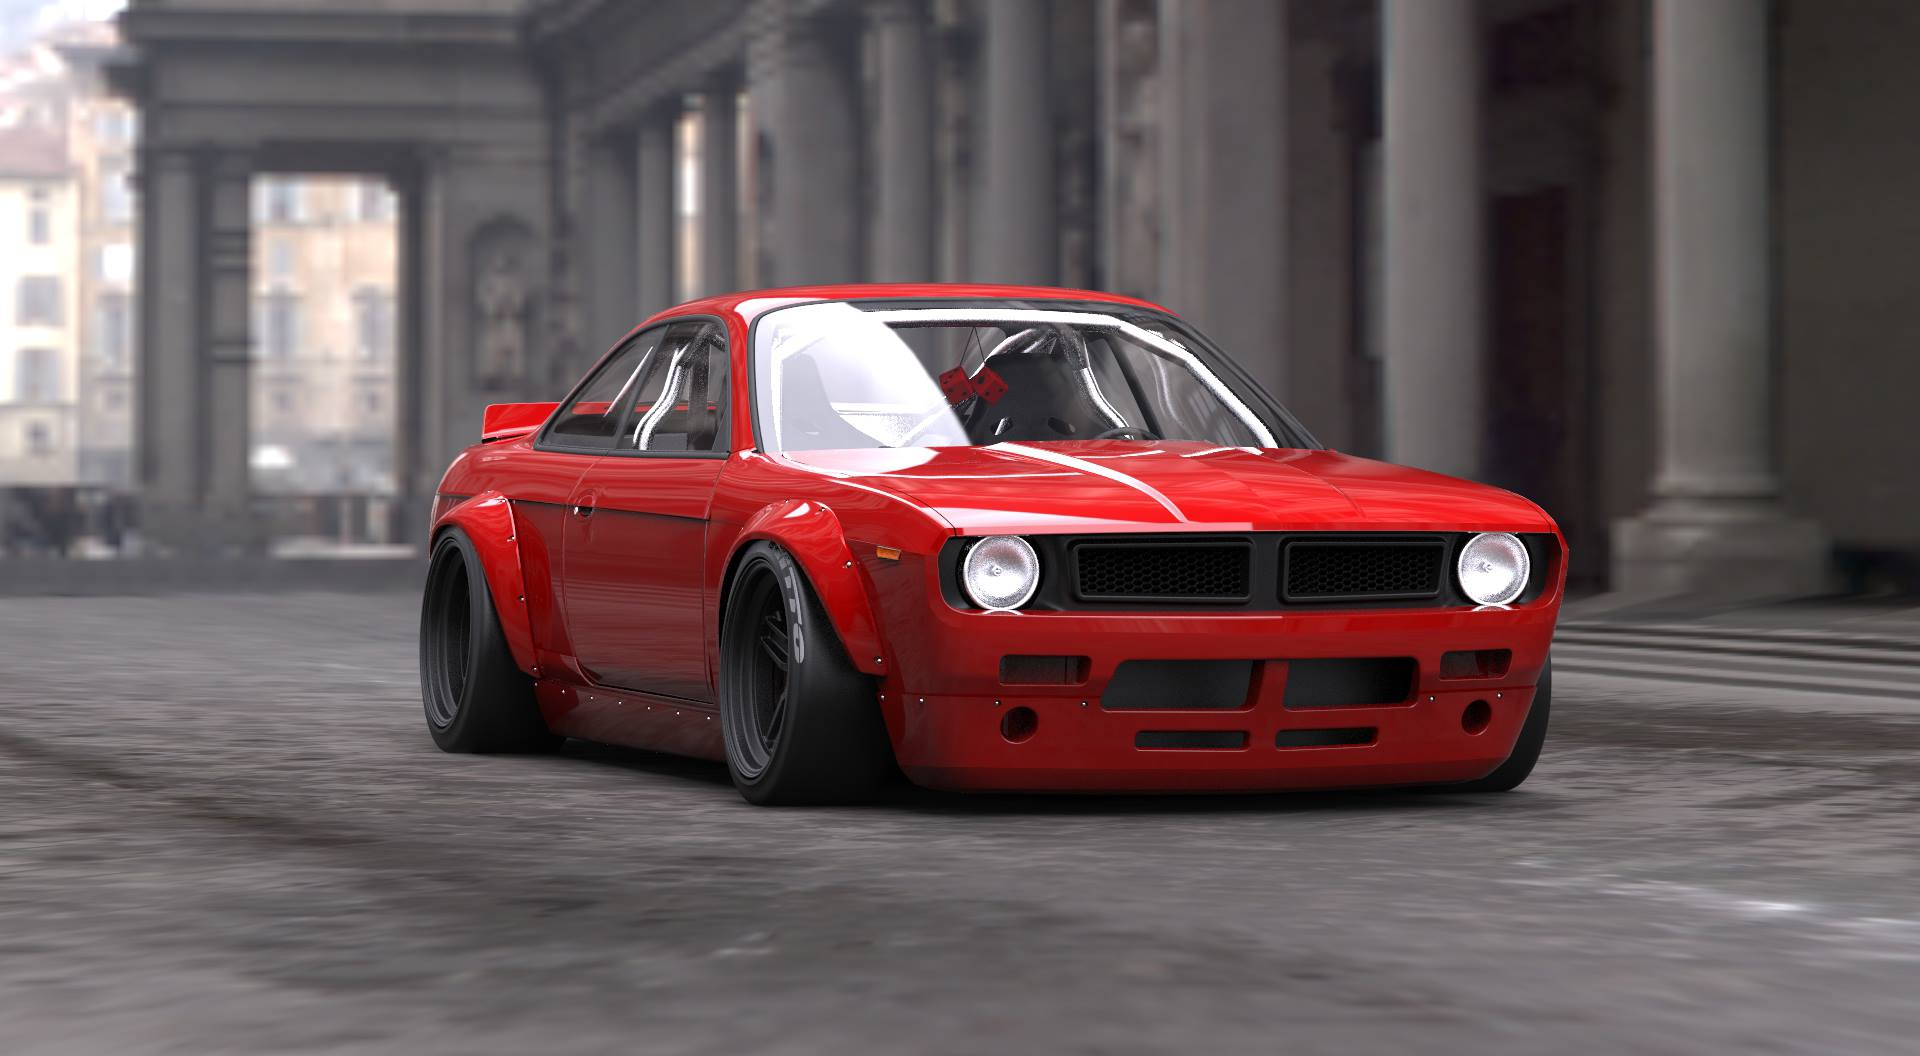 Rocket Bunny Body Kit Turns Your S14 Into A Plymouth Cuda